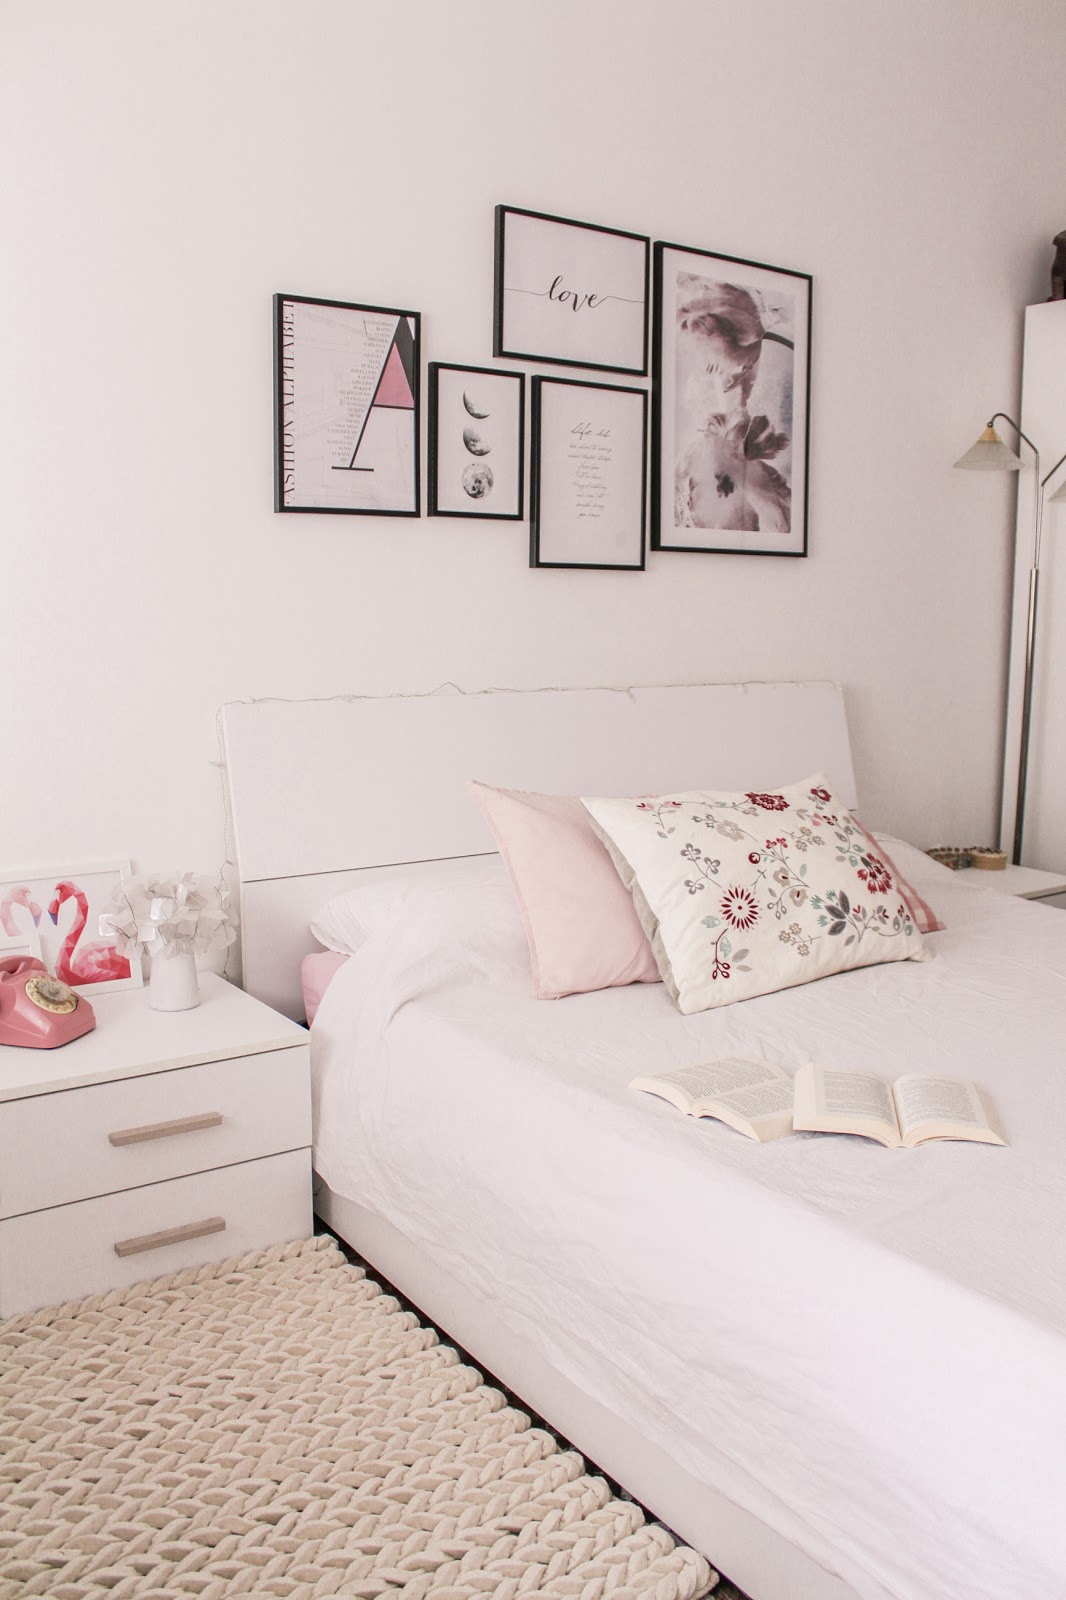 HOME DECOR: dove trovare TAPPETI belli e di qualità